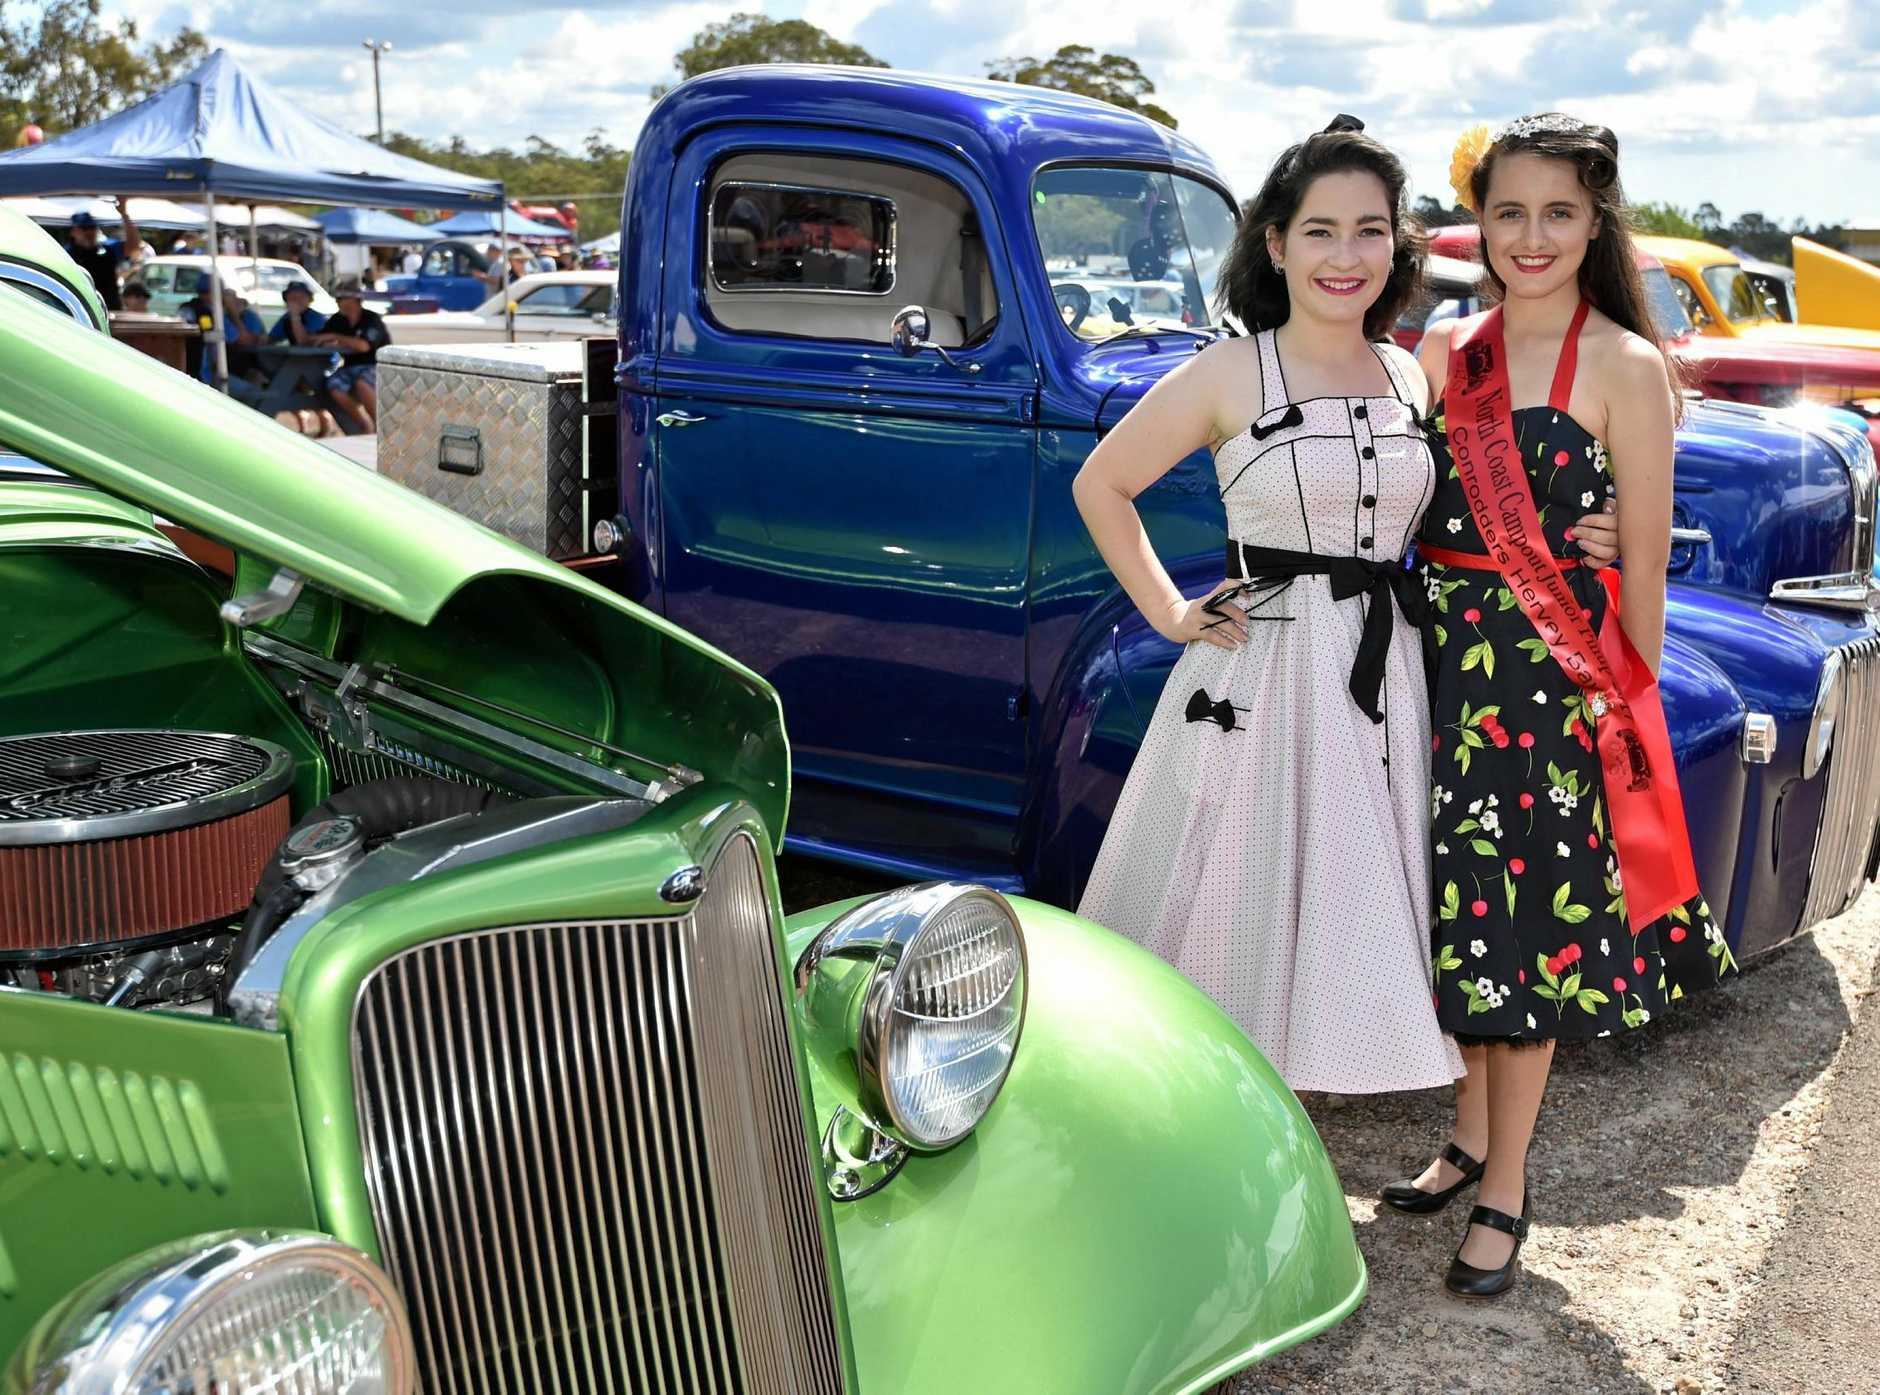 SHOW AND SHINE: The Hot Rod and Custom Car Show is held on Easter Sunday at the Maryborough showground.